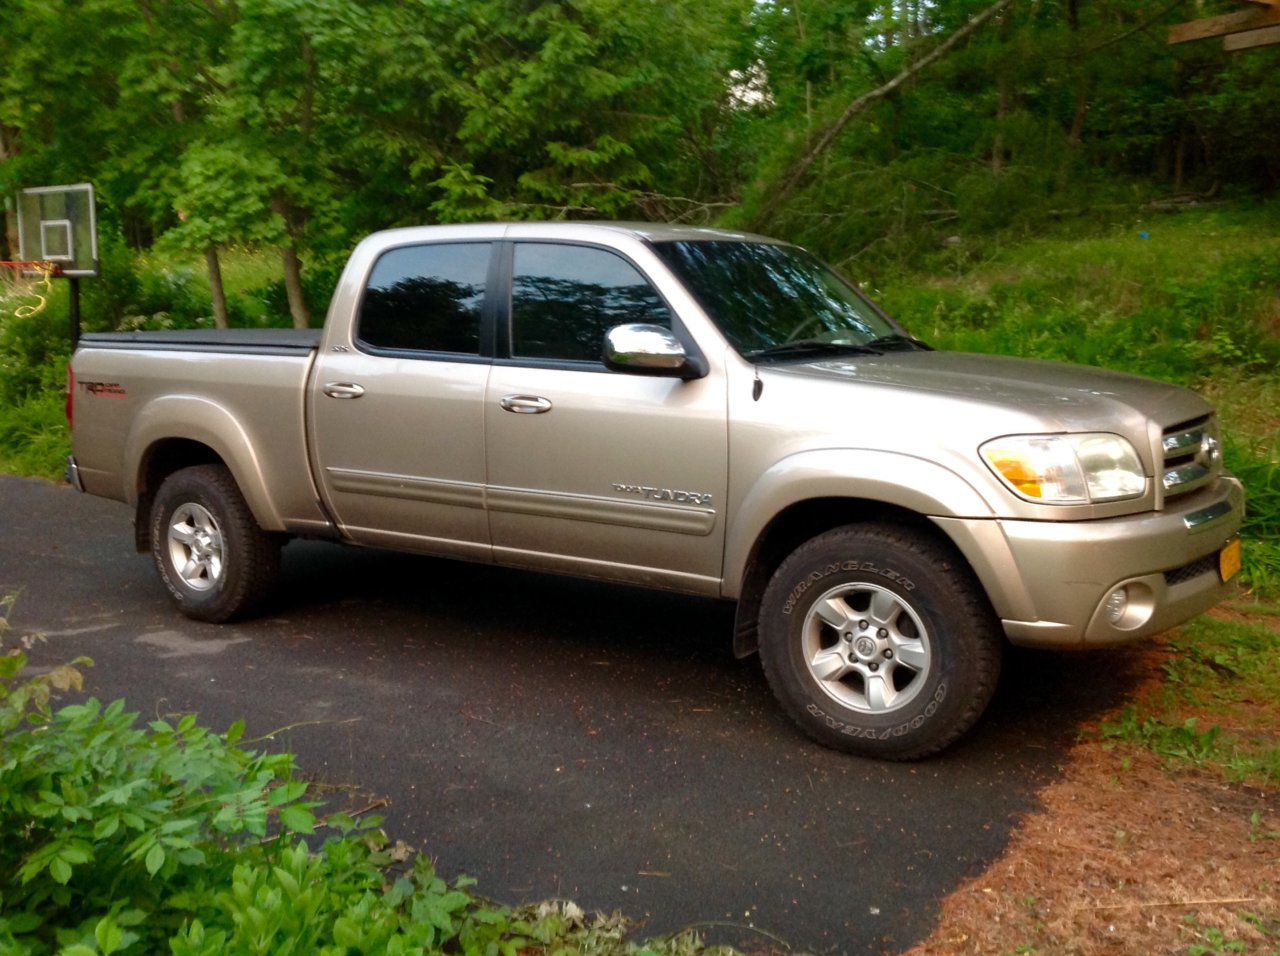 Ticking, slapping or what? | Toyota Tundra Forum